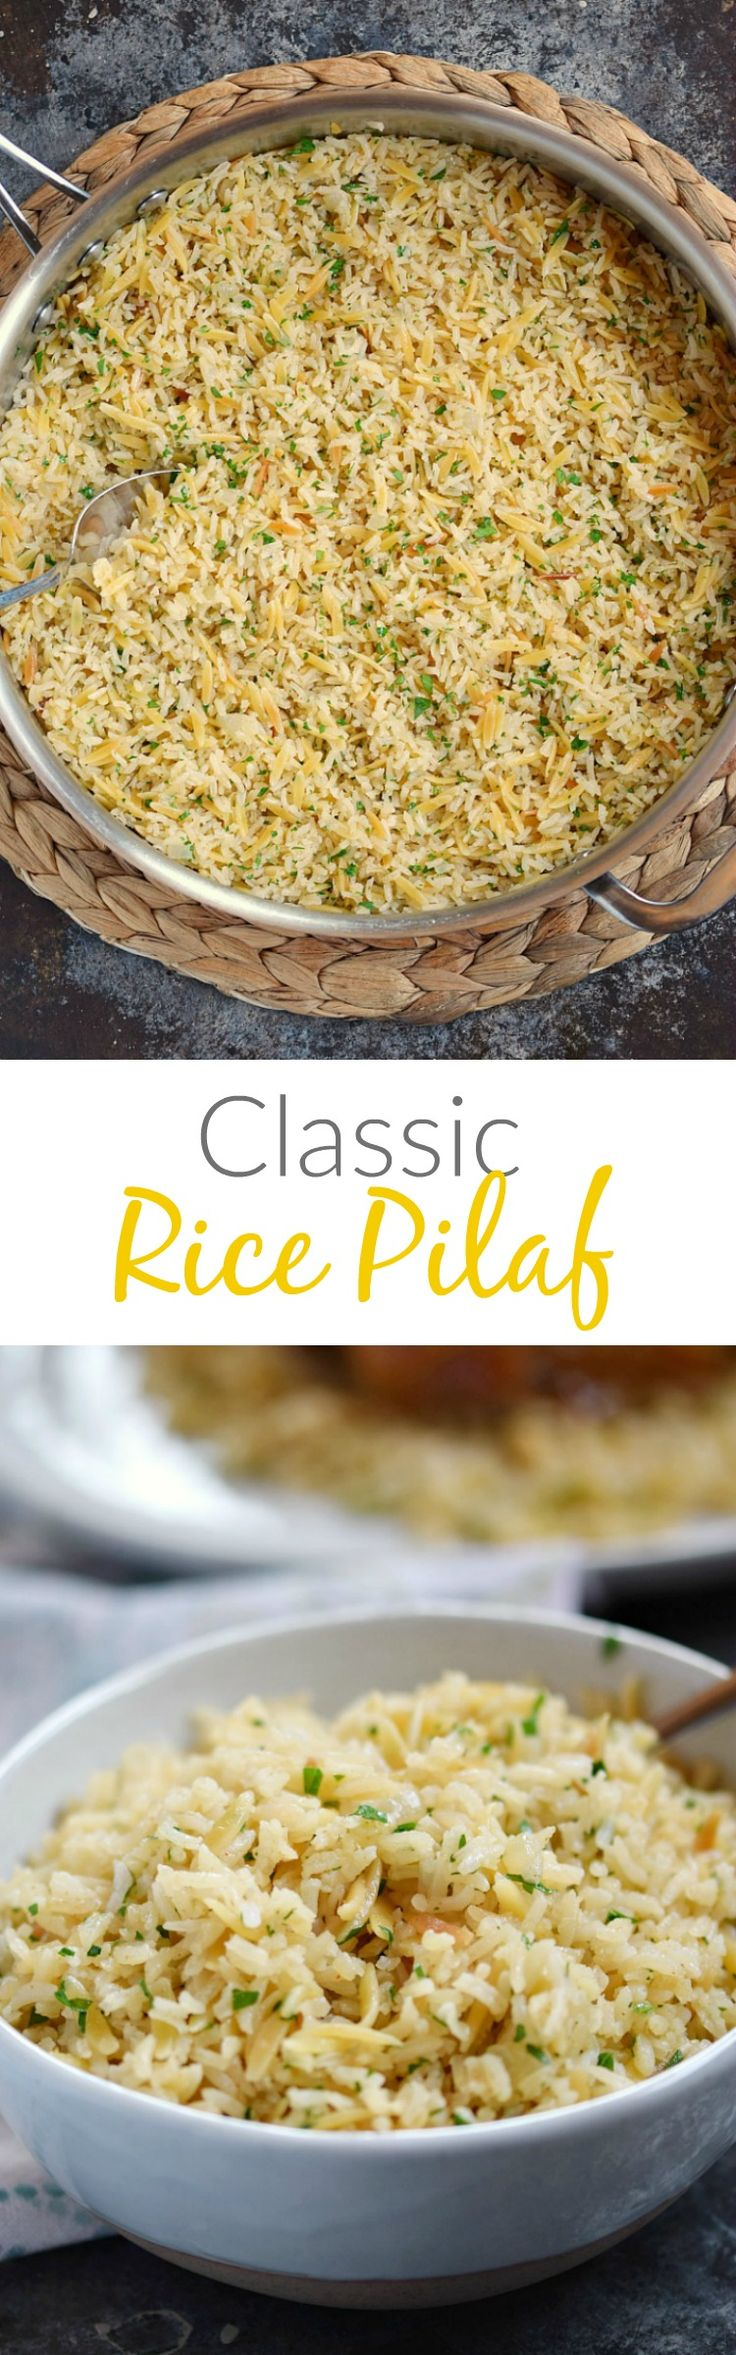 This Classic Rice Pilaf is loaded with flavor and pairs perfectly with your favorite main dish whether it is poultry, fish, pork, or beef! cookingwithcurls.com